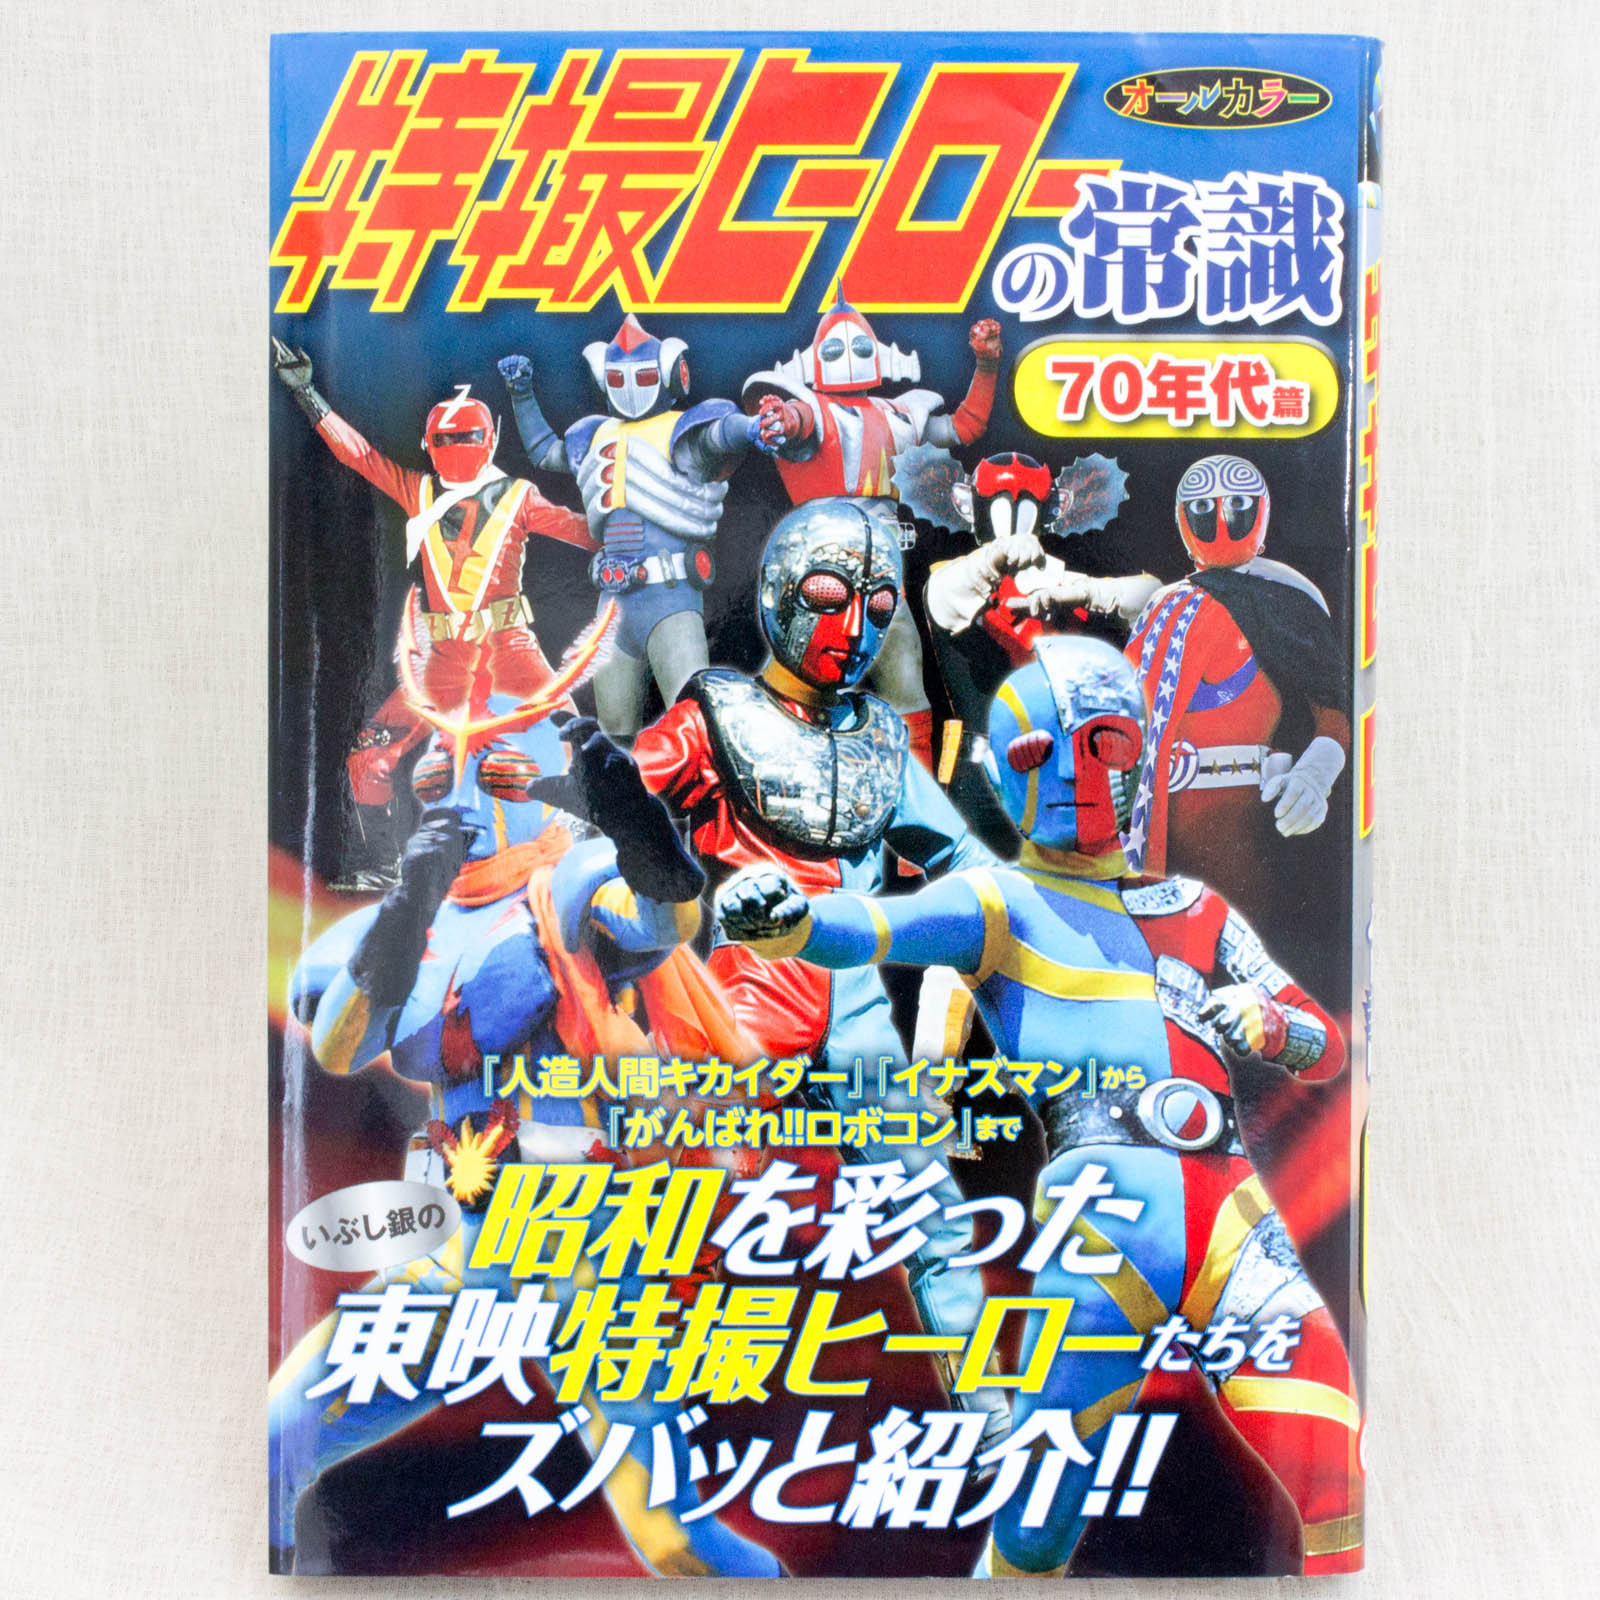 Tokusatsu Hero no Joushiki All Color Page Book / Kikaider Inazuman Robocon